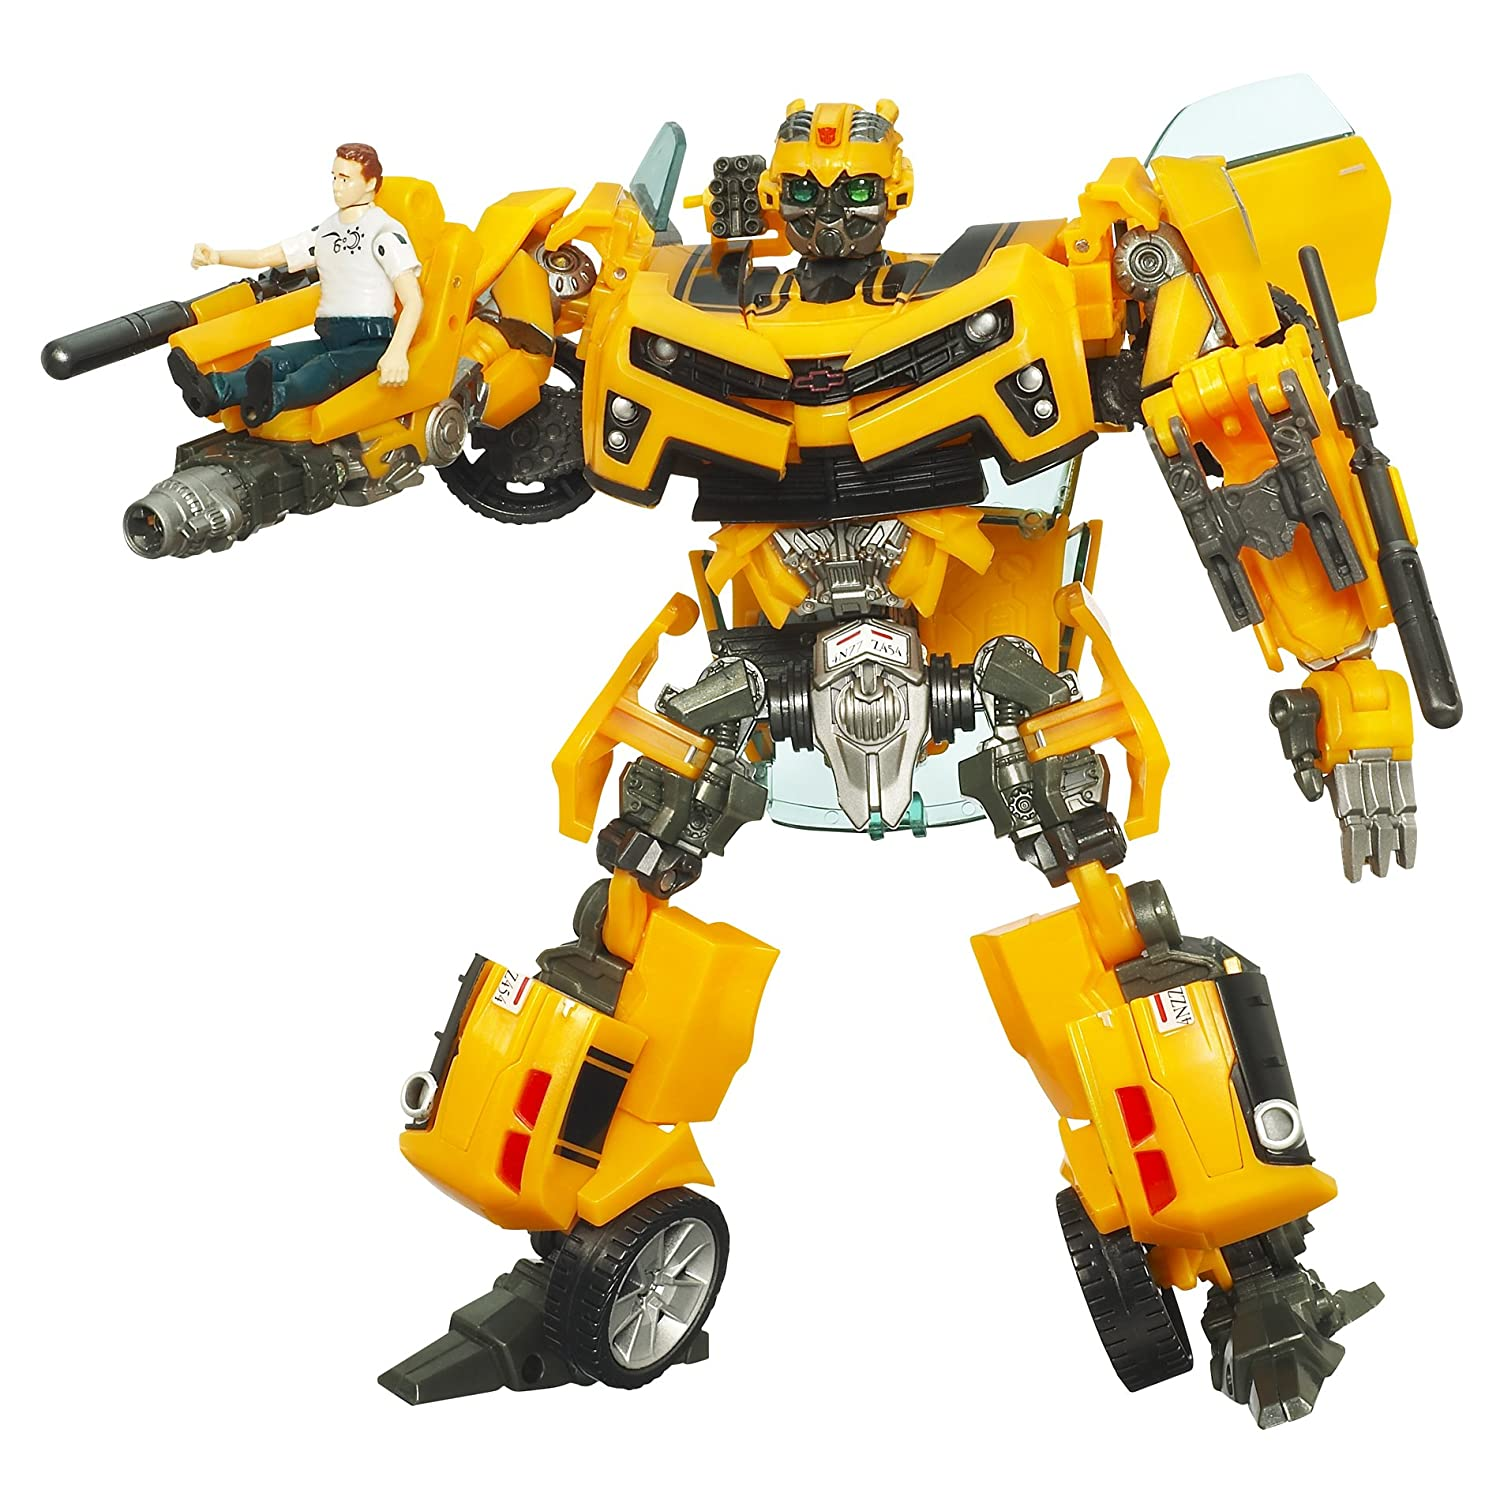 Transformers - 97771 - Human Alliance - Hunt for the Decepticons - Level 4 - Voyager Class - Bumblebee (ca. 15 cm) con Sam Witwicky (ca.